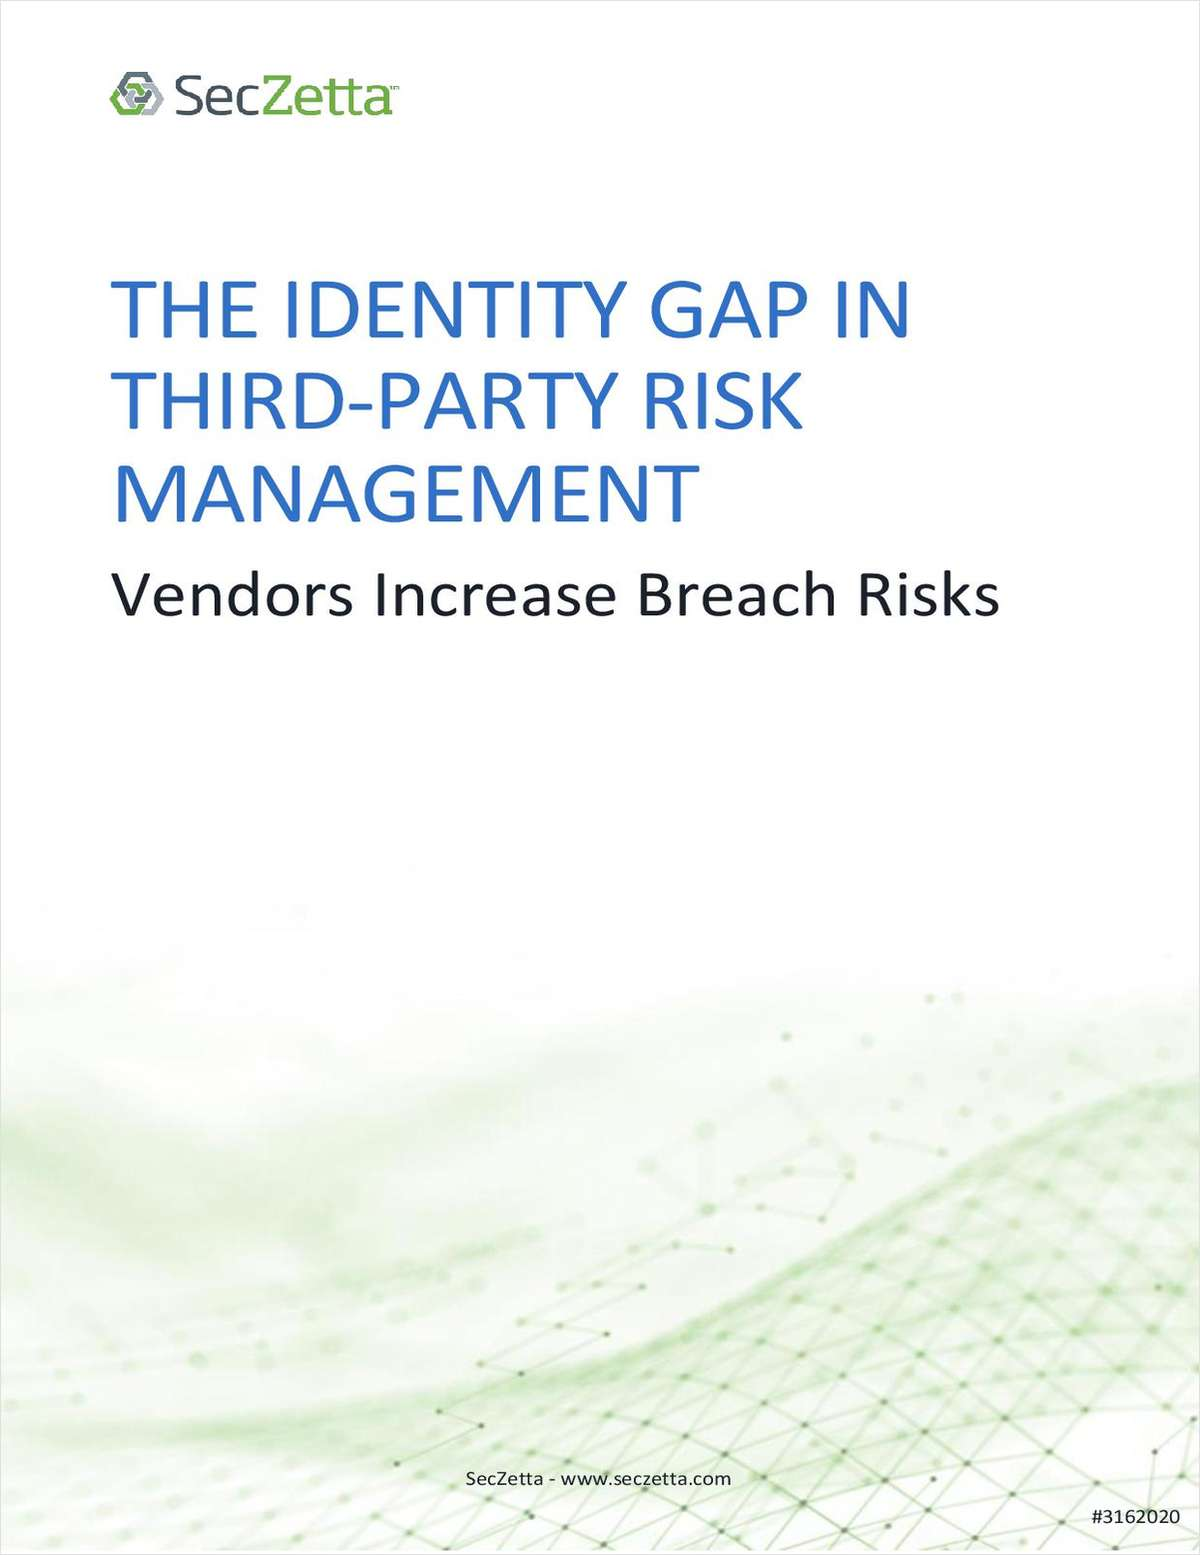 The Identity Gap in Third-Party Risk Management